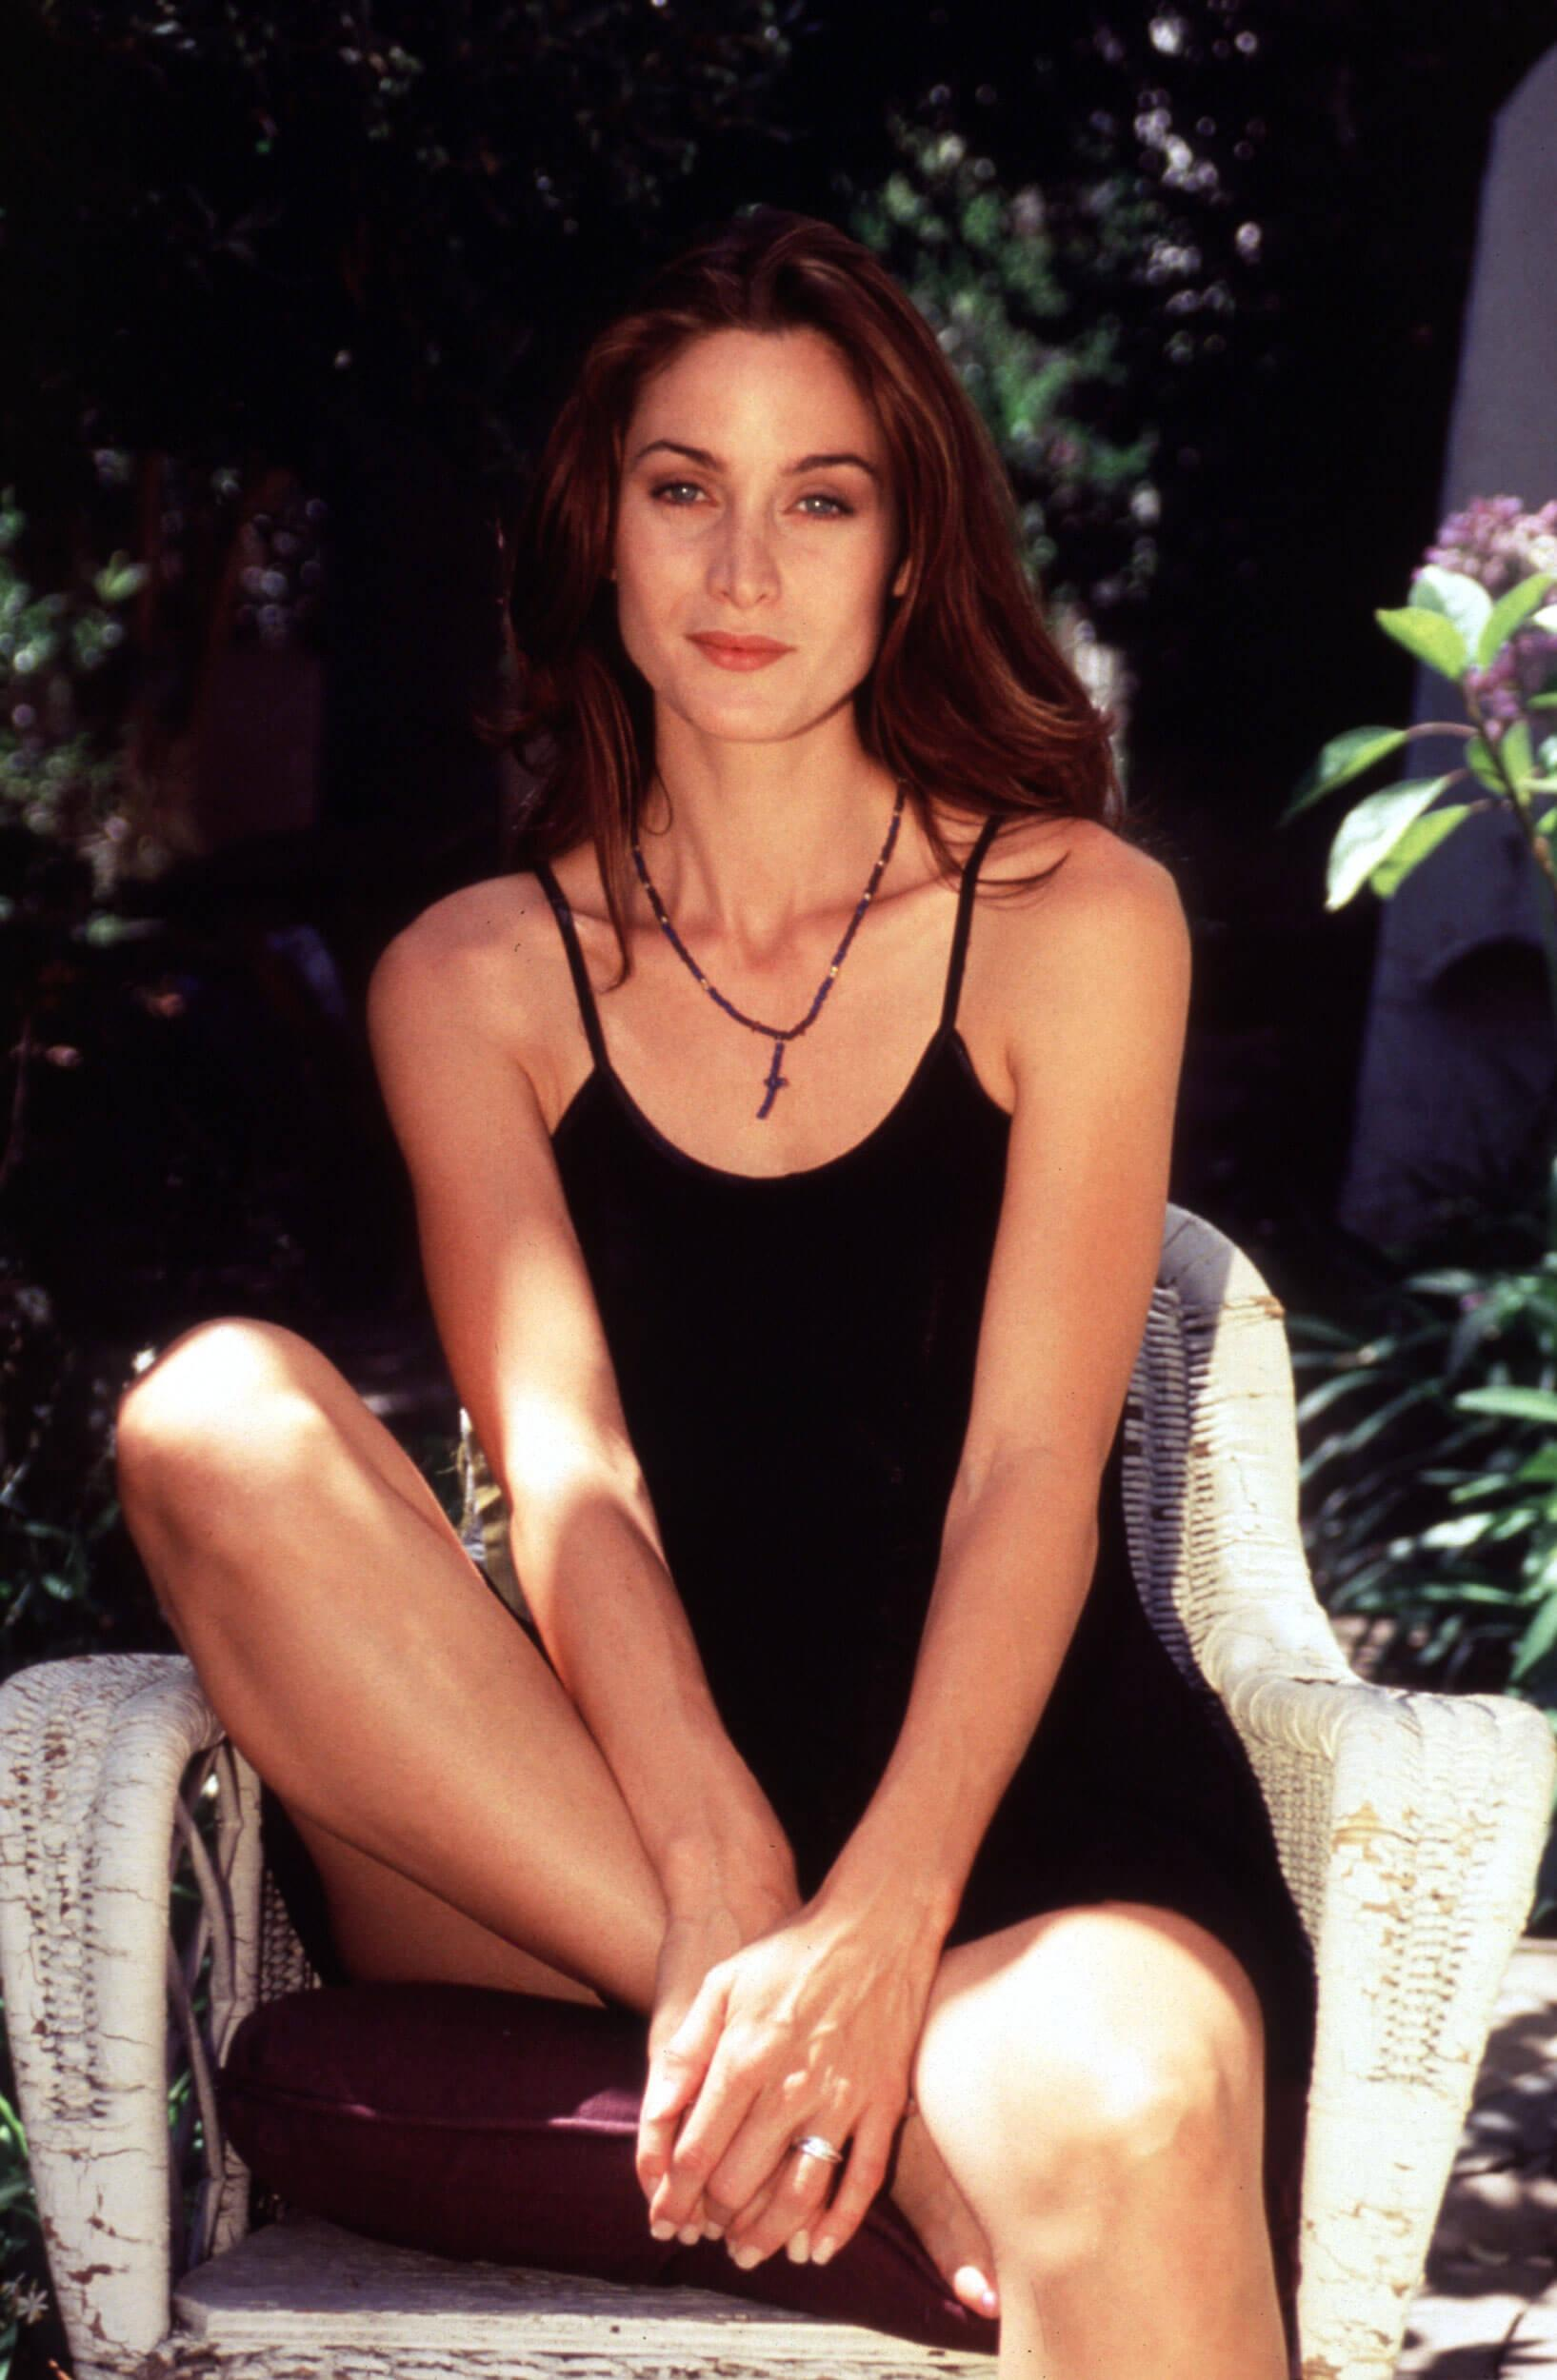 Carrie Anne Moss hot pics